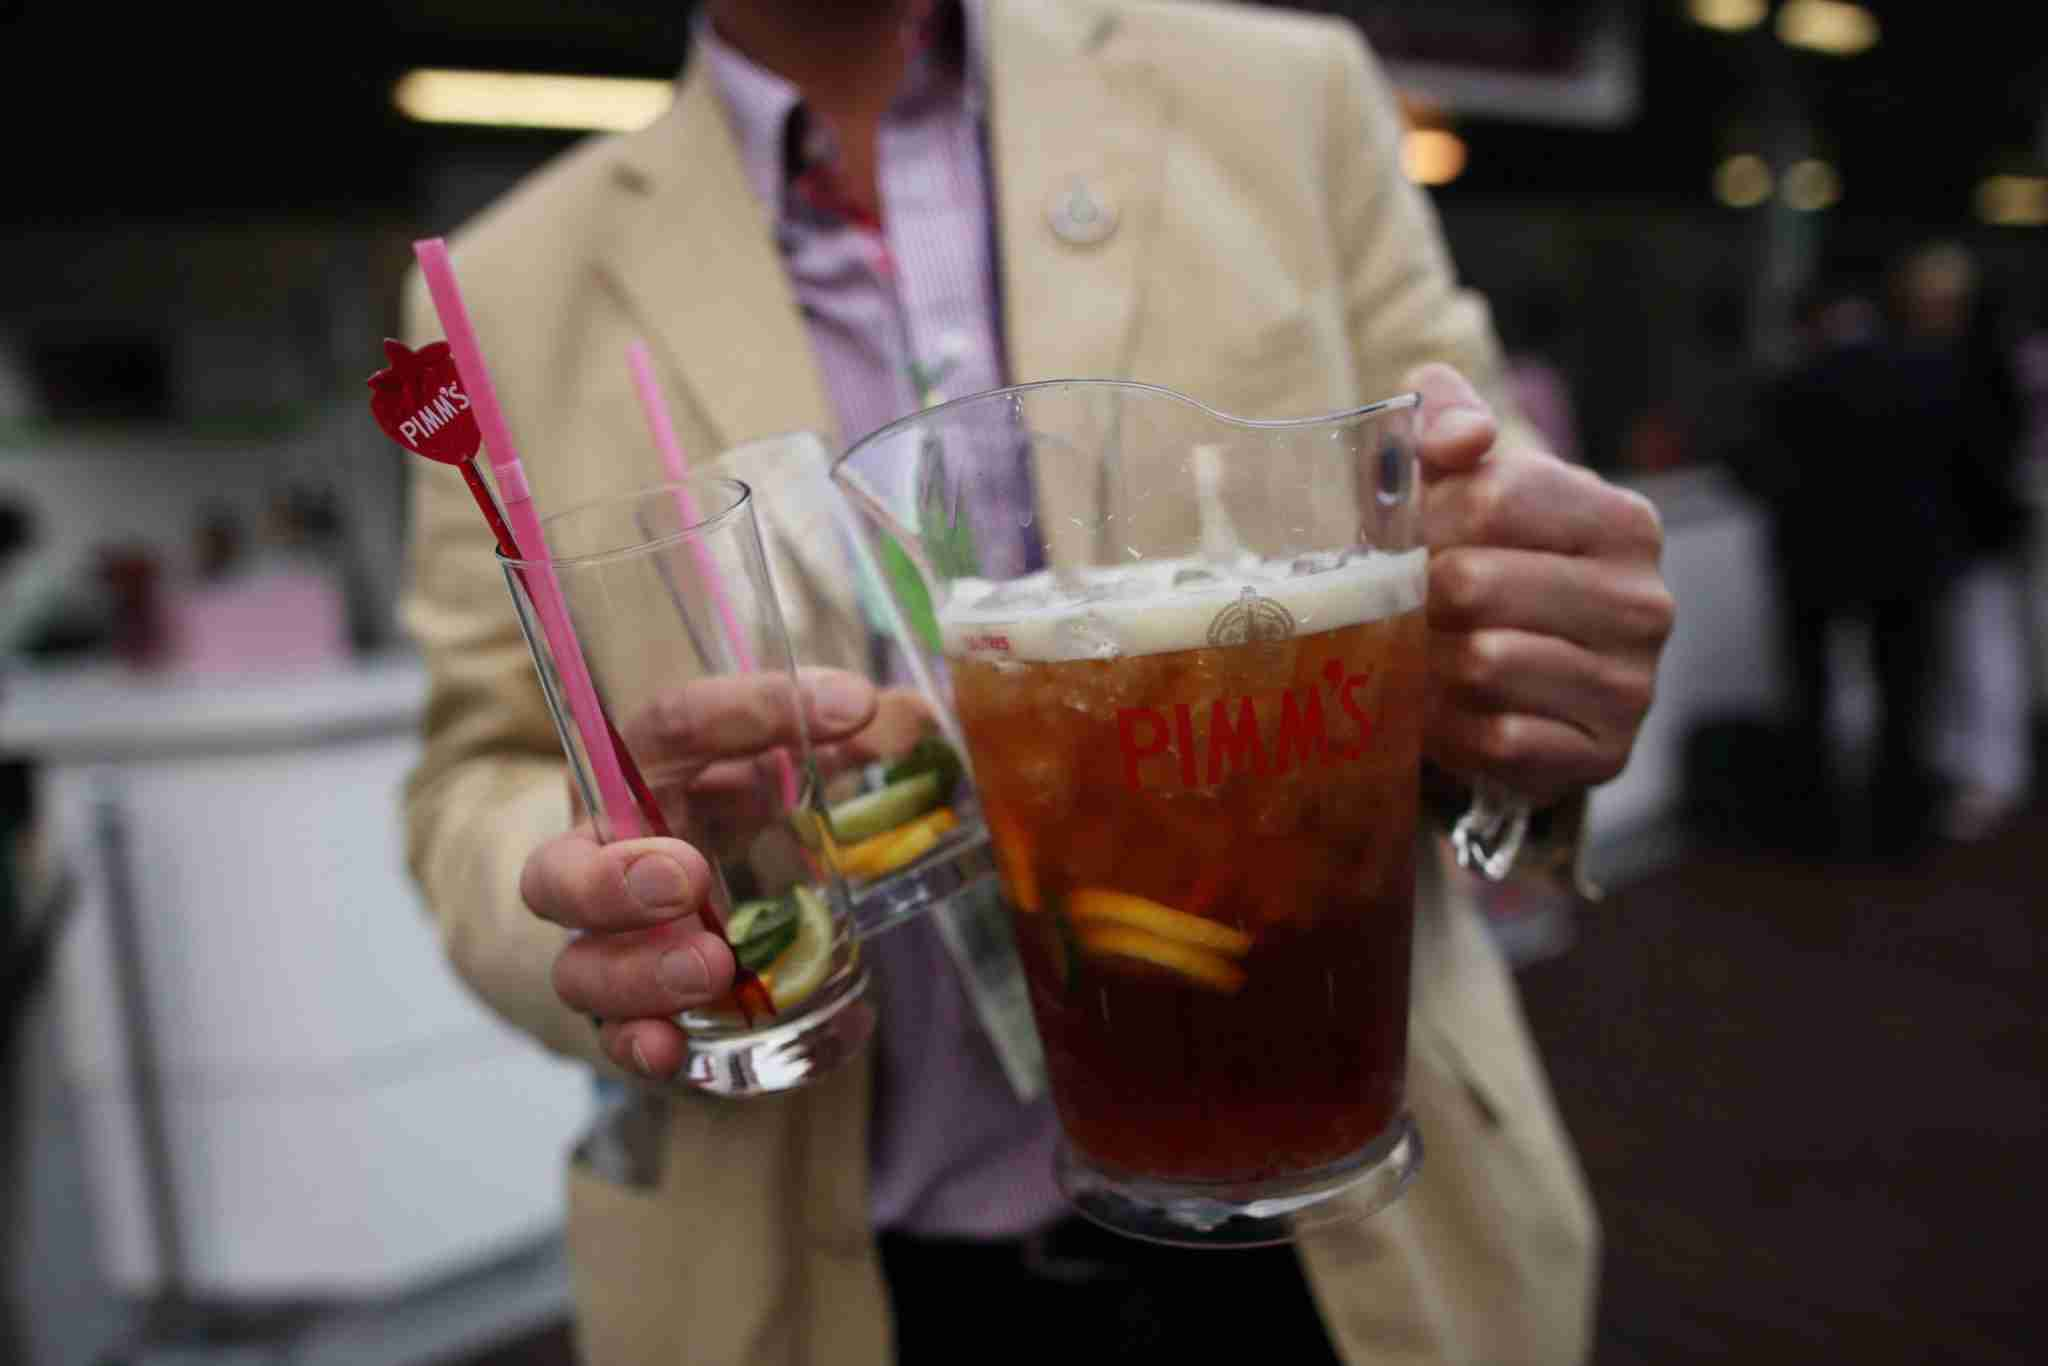 LONDON, ENGLAND - JUNE 25: A tournament goer carries a jug of pimms on day one of the Wimbledon Lawn Tennis Championships at the All England Lawn Tennis and Croquet Club on June 25, 2012 in London, England. (Photo by Dan Kitwood/Getty Images)